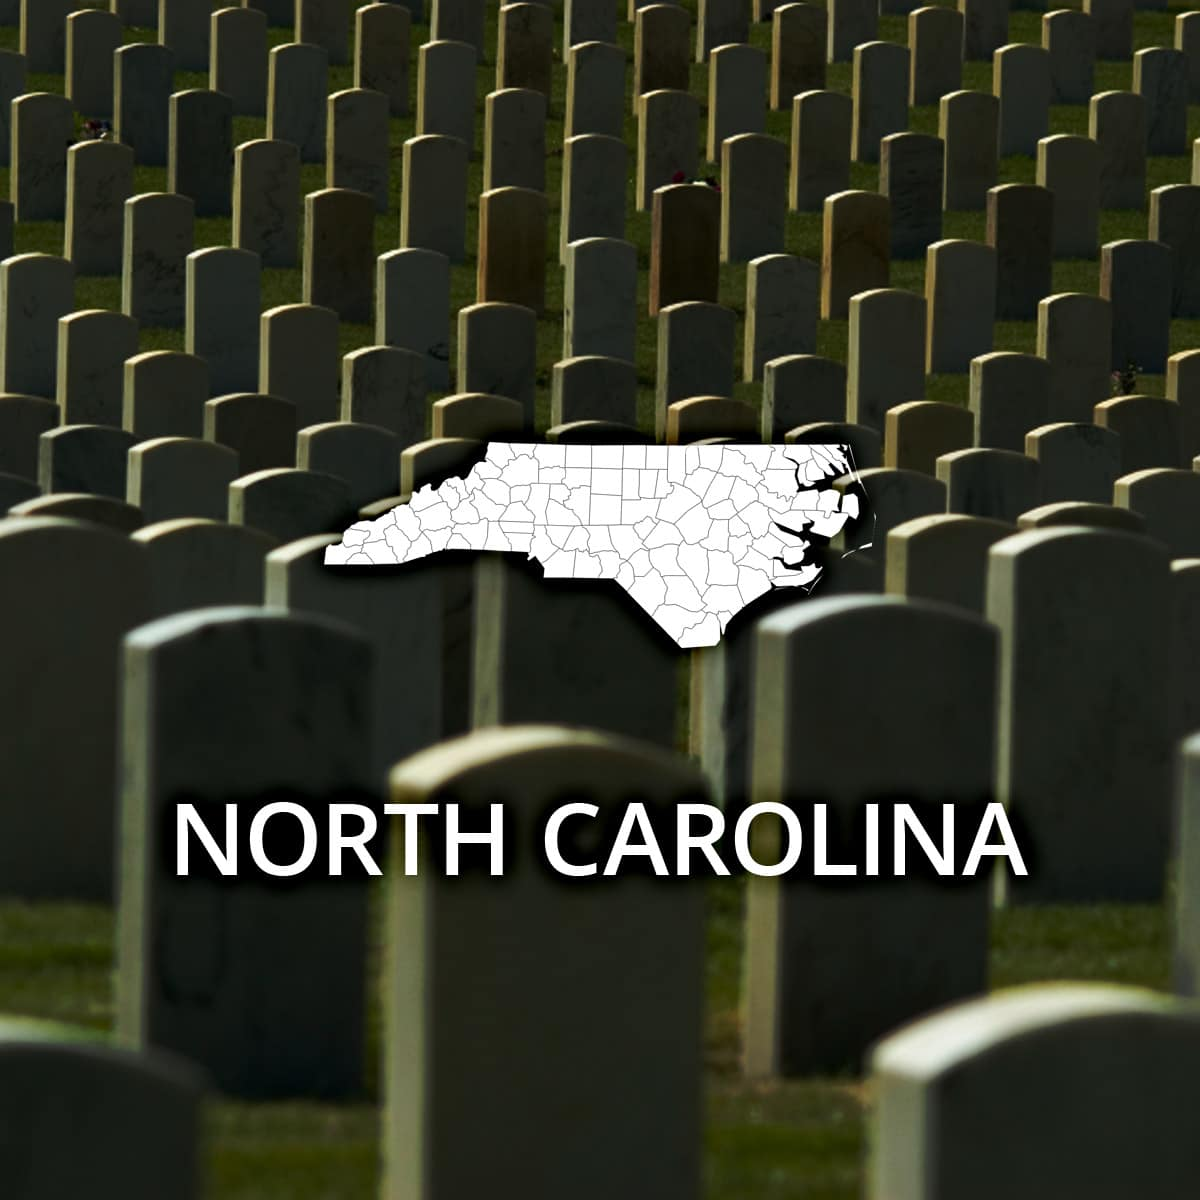 Where to Obtain a North Carolina Death Certificate